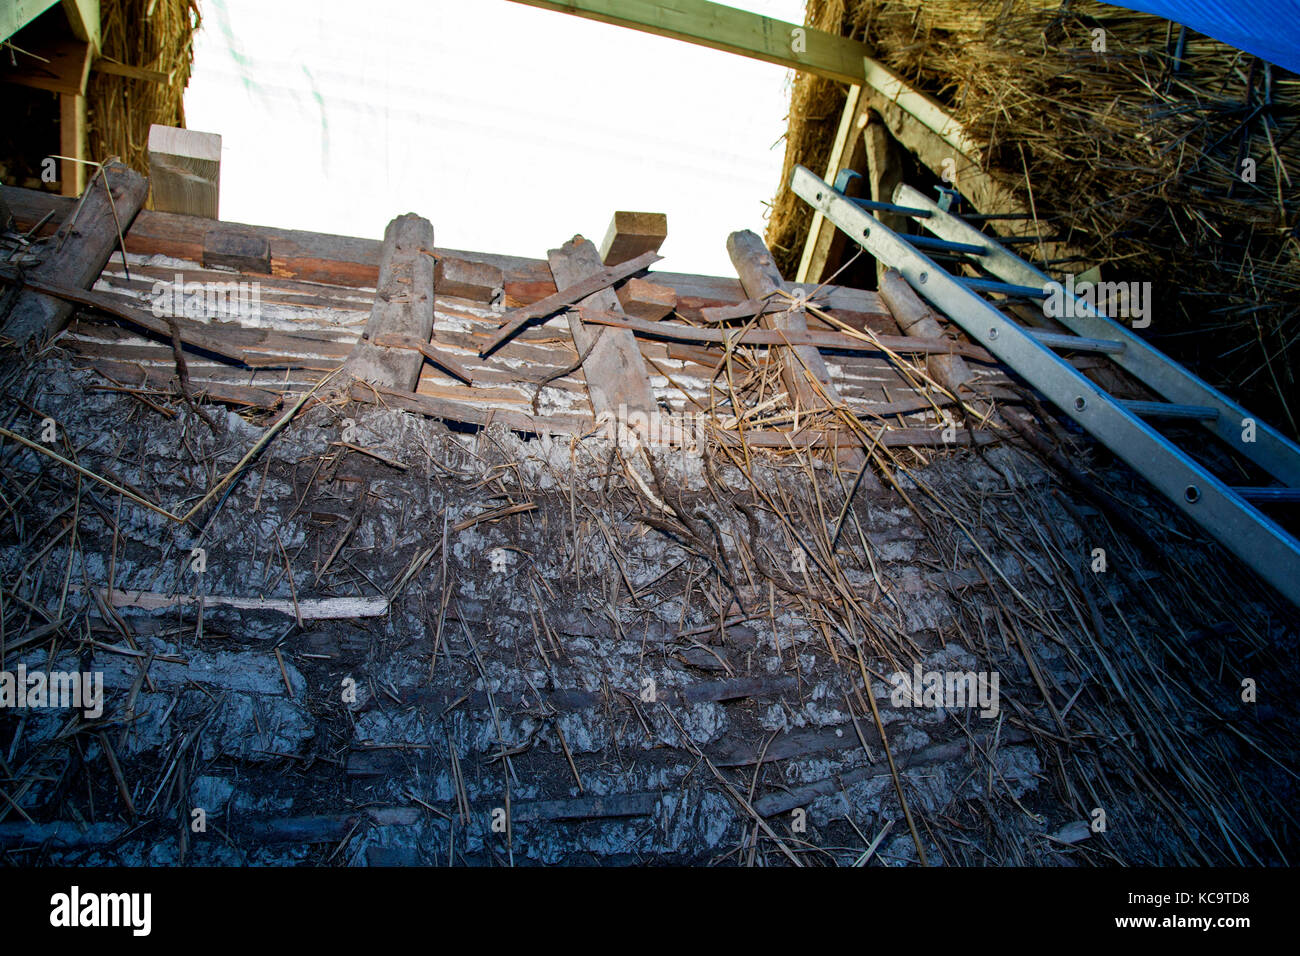 Repair and re-thatching of the roof at The Plough pub, Church Street, West Hanney, Wantage, Oxfordshire, UK - Stock Image